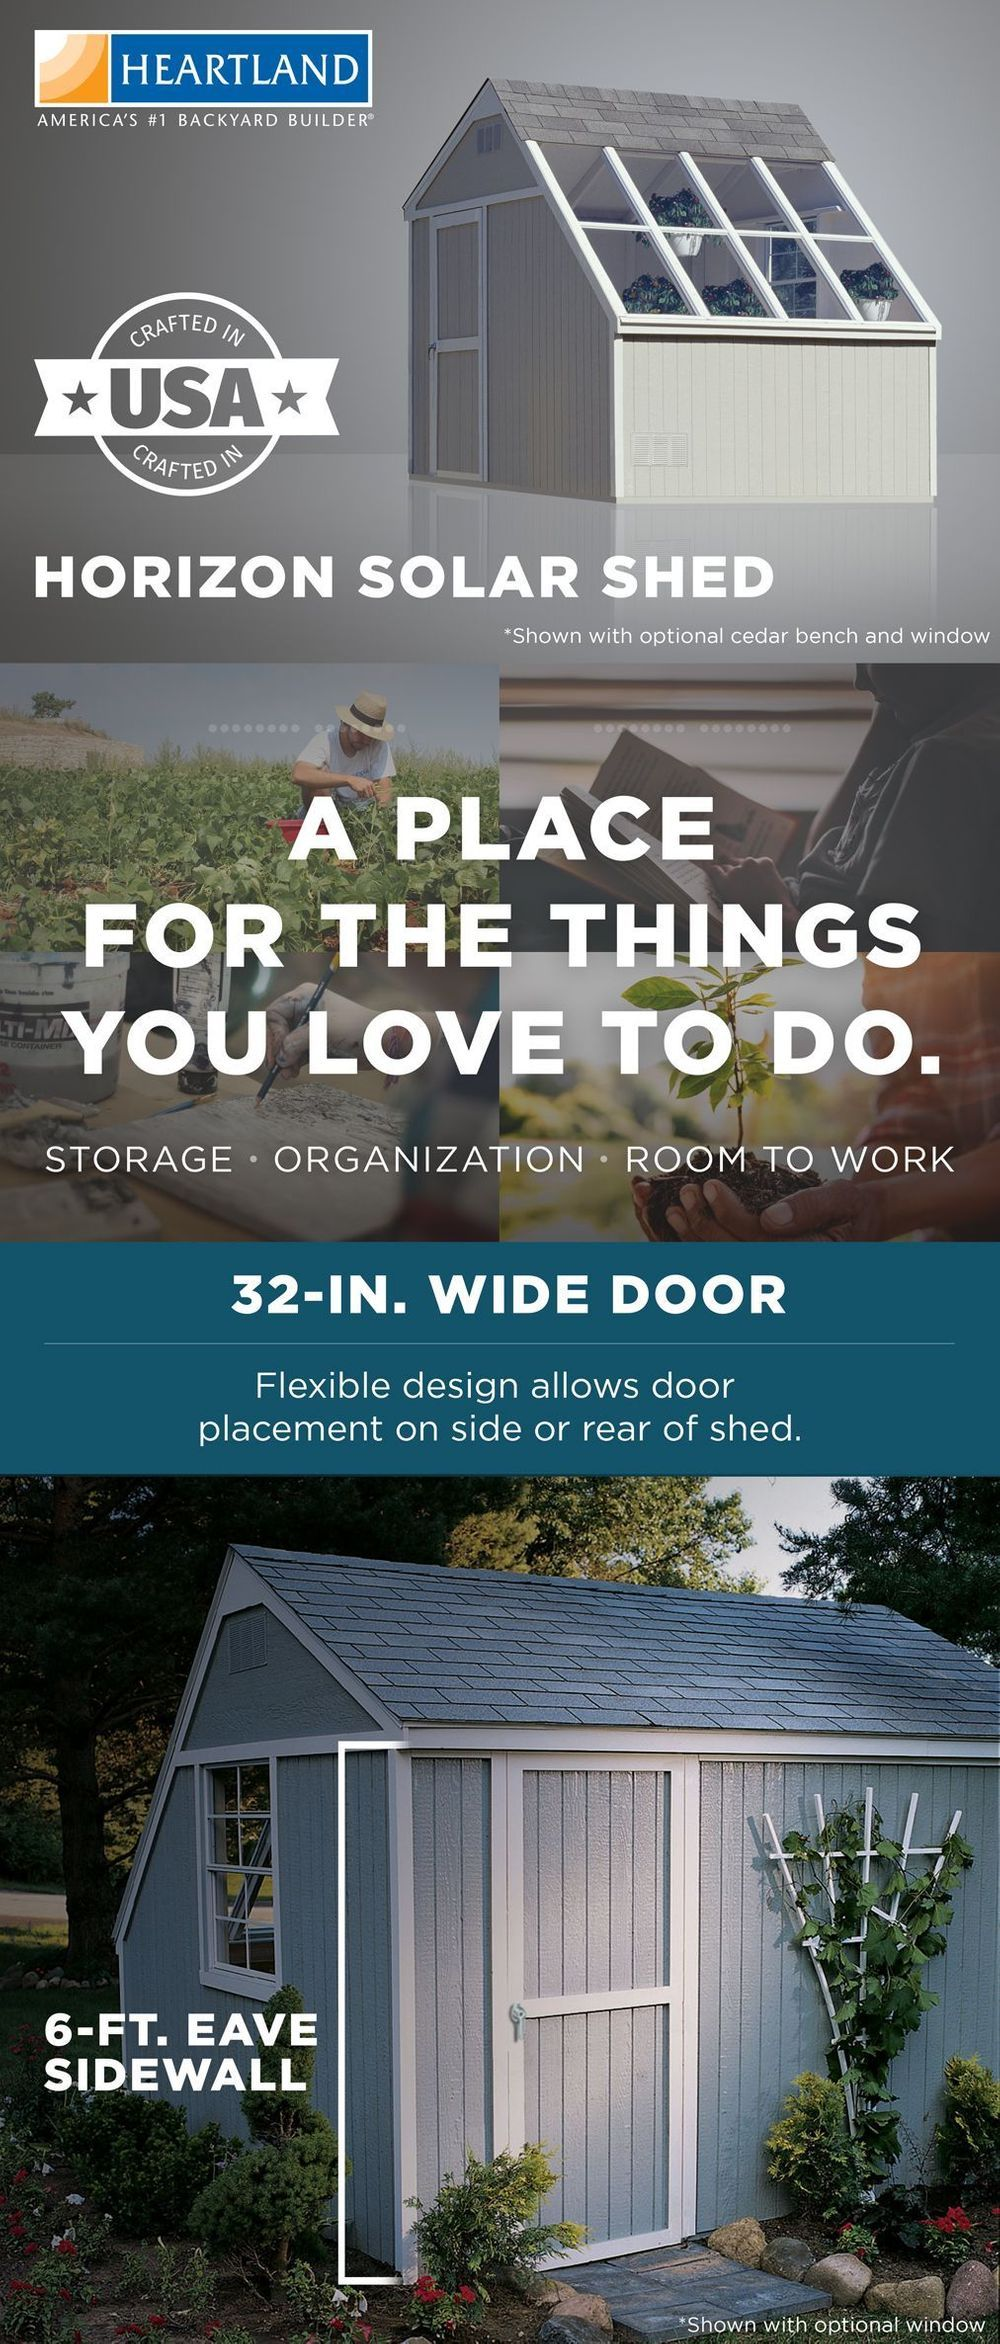 Heartland Common 10 Ft X 8 Ft Interior Dimensions 10 Ft X 7 71 Ft Horizon Saltbox Engineered Storage Shed Installation Not Storage Shed Shed Installation